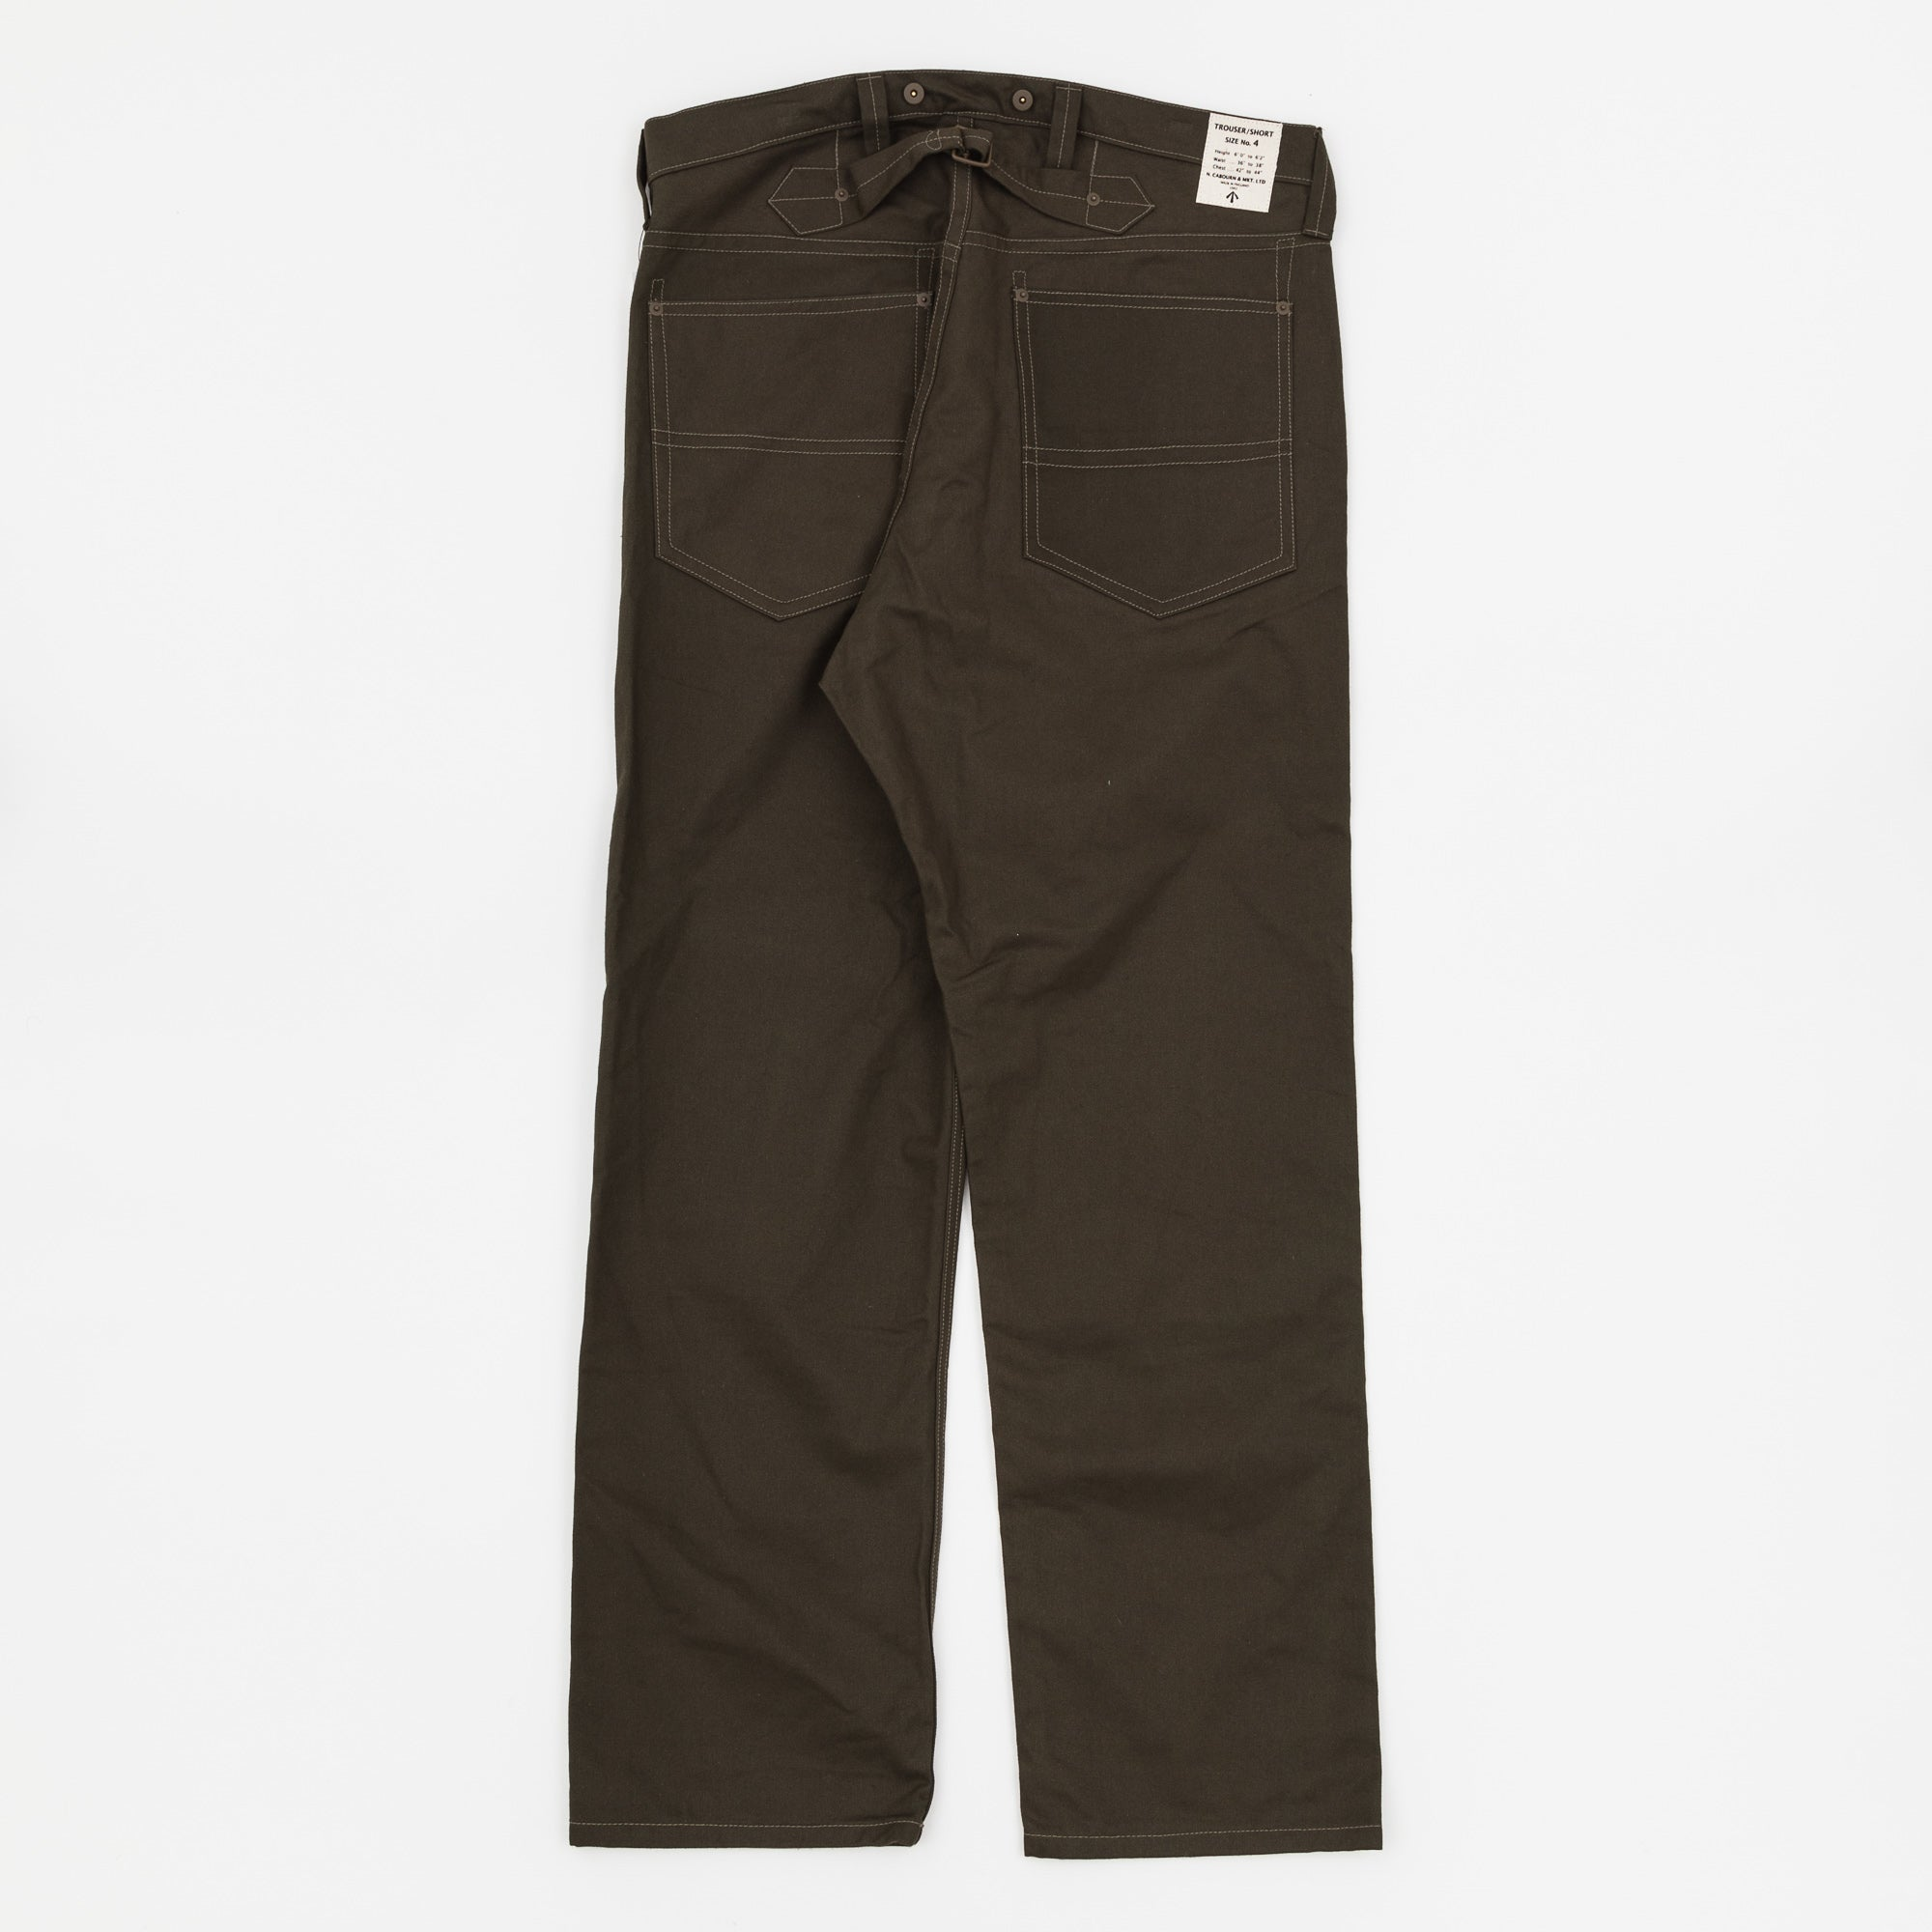 Nigel Cabourn Hard Drill Work Jean